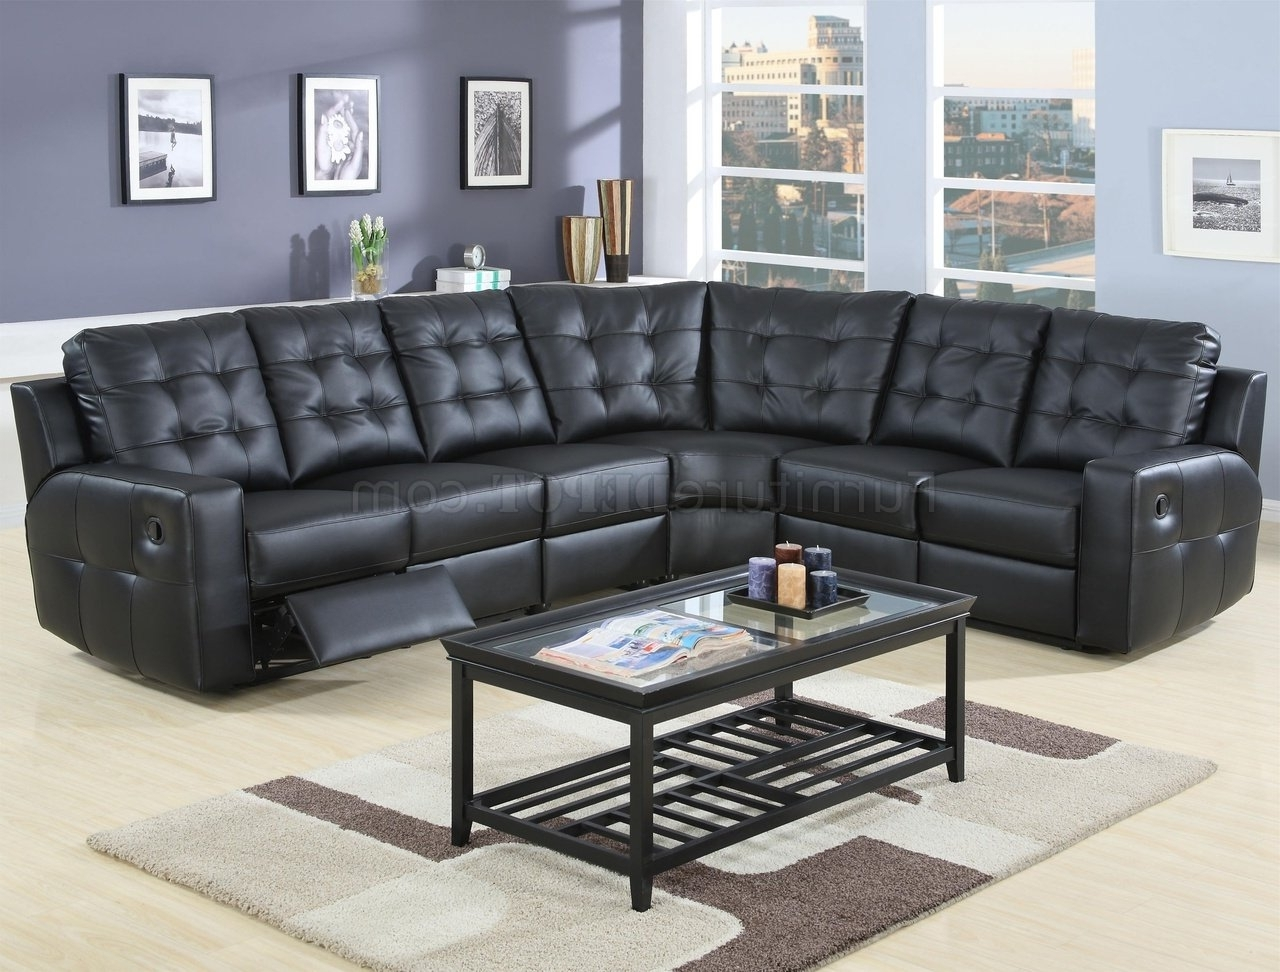 Popular Modern Leather Double Reclining Sectional Sofa 600315 Black Pertaining To Leather Motion Sectional Sofas (View 15 of 20)